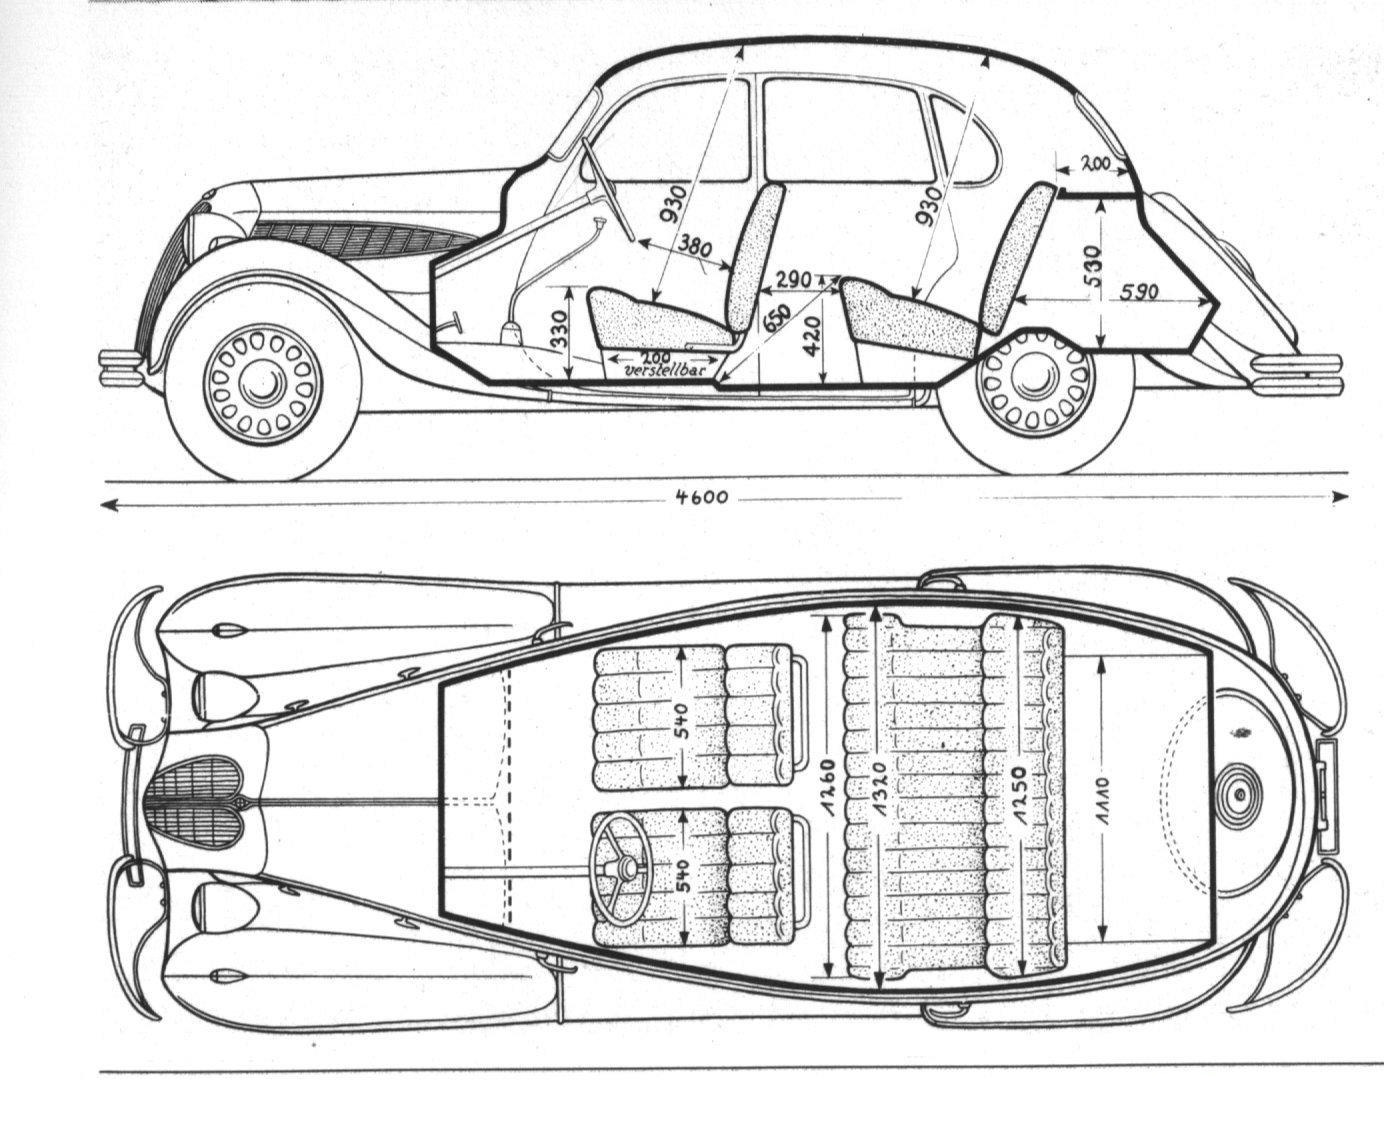 1954 Plymouth Wiring Diagram besides 1939 Ford Pickup Wiring Diagram additionally Chevy Distributor Wiring Diagram together with 134 Wiring Diagram 100e Anglia Prior Febuary 1955 likewise Showthread. on 1938 ford truck wiring